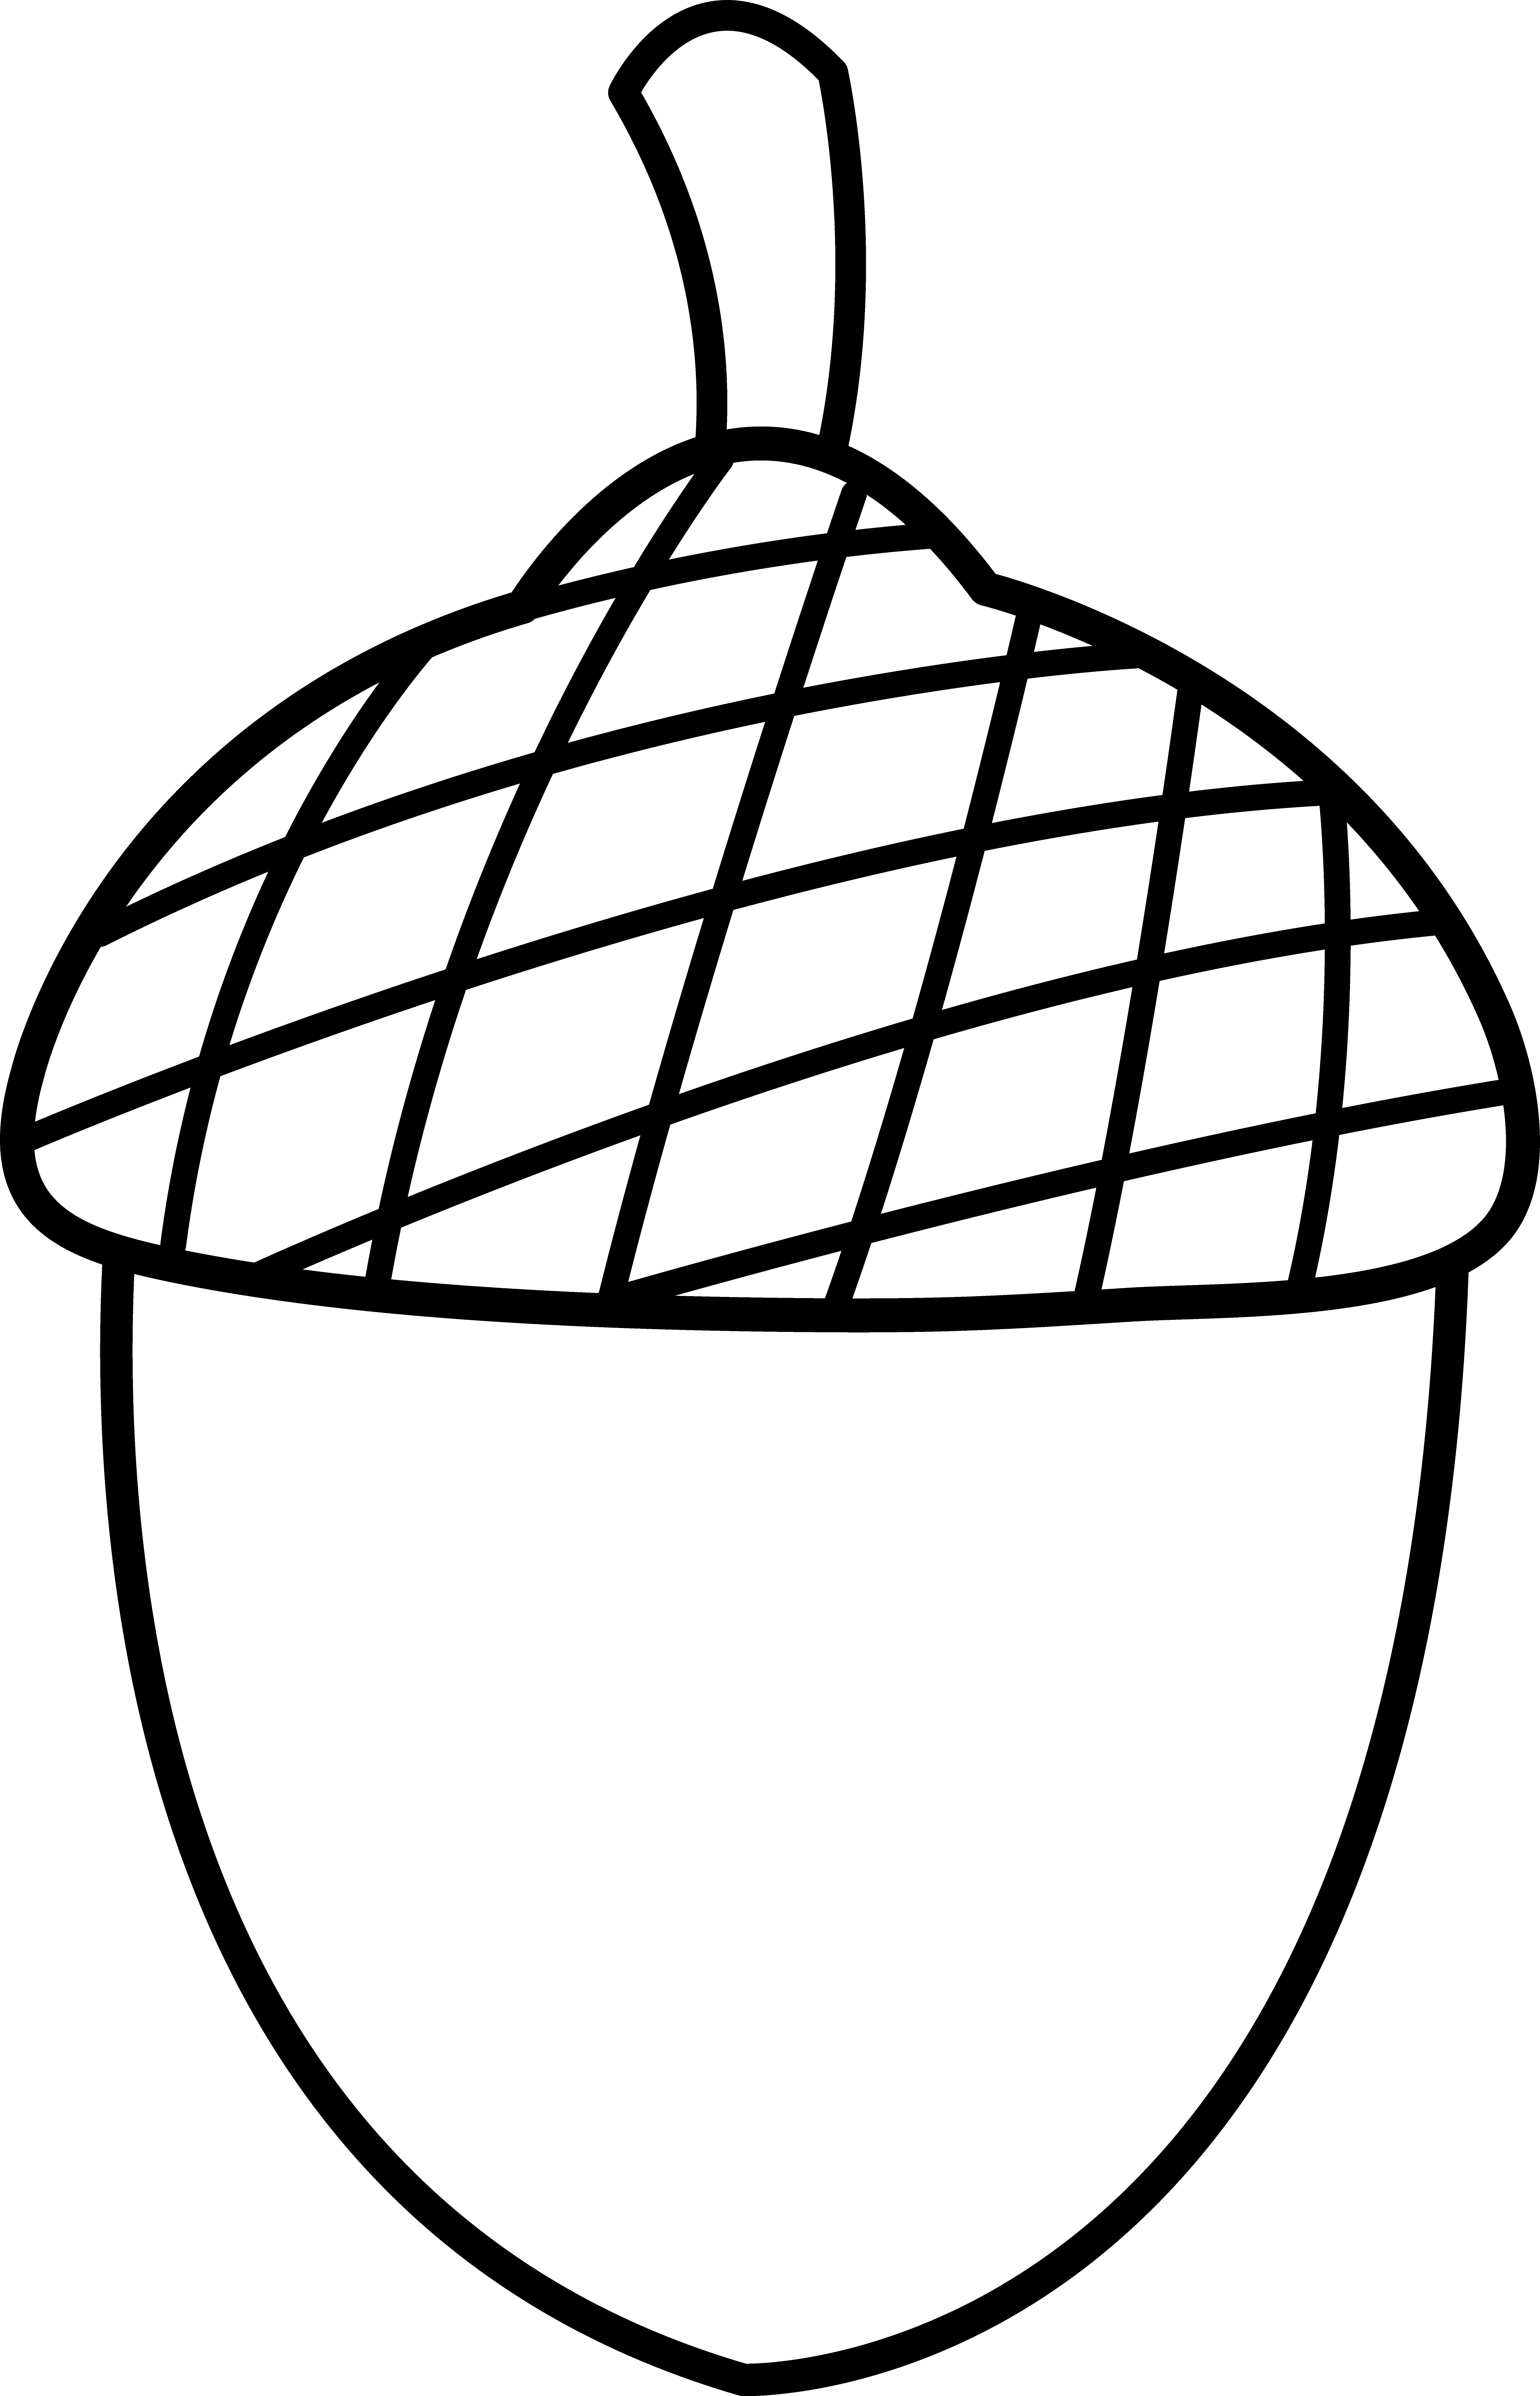 Acorn Clipart Black And White | Clipart Panda - Free Clipart Images